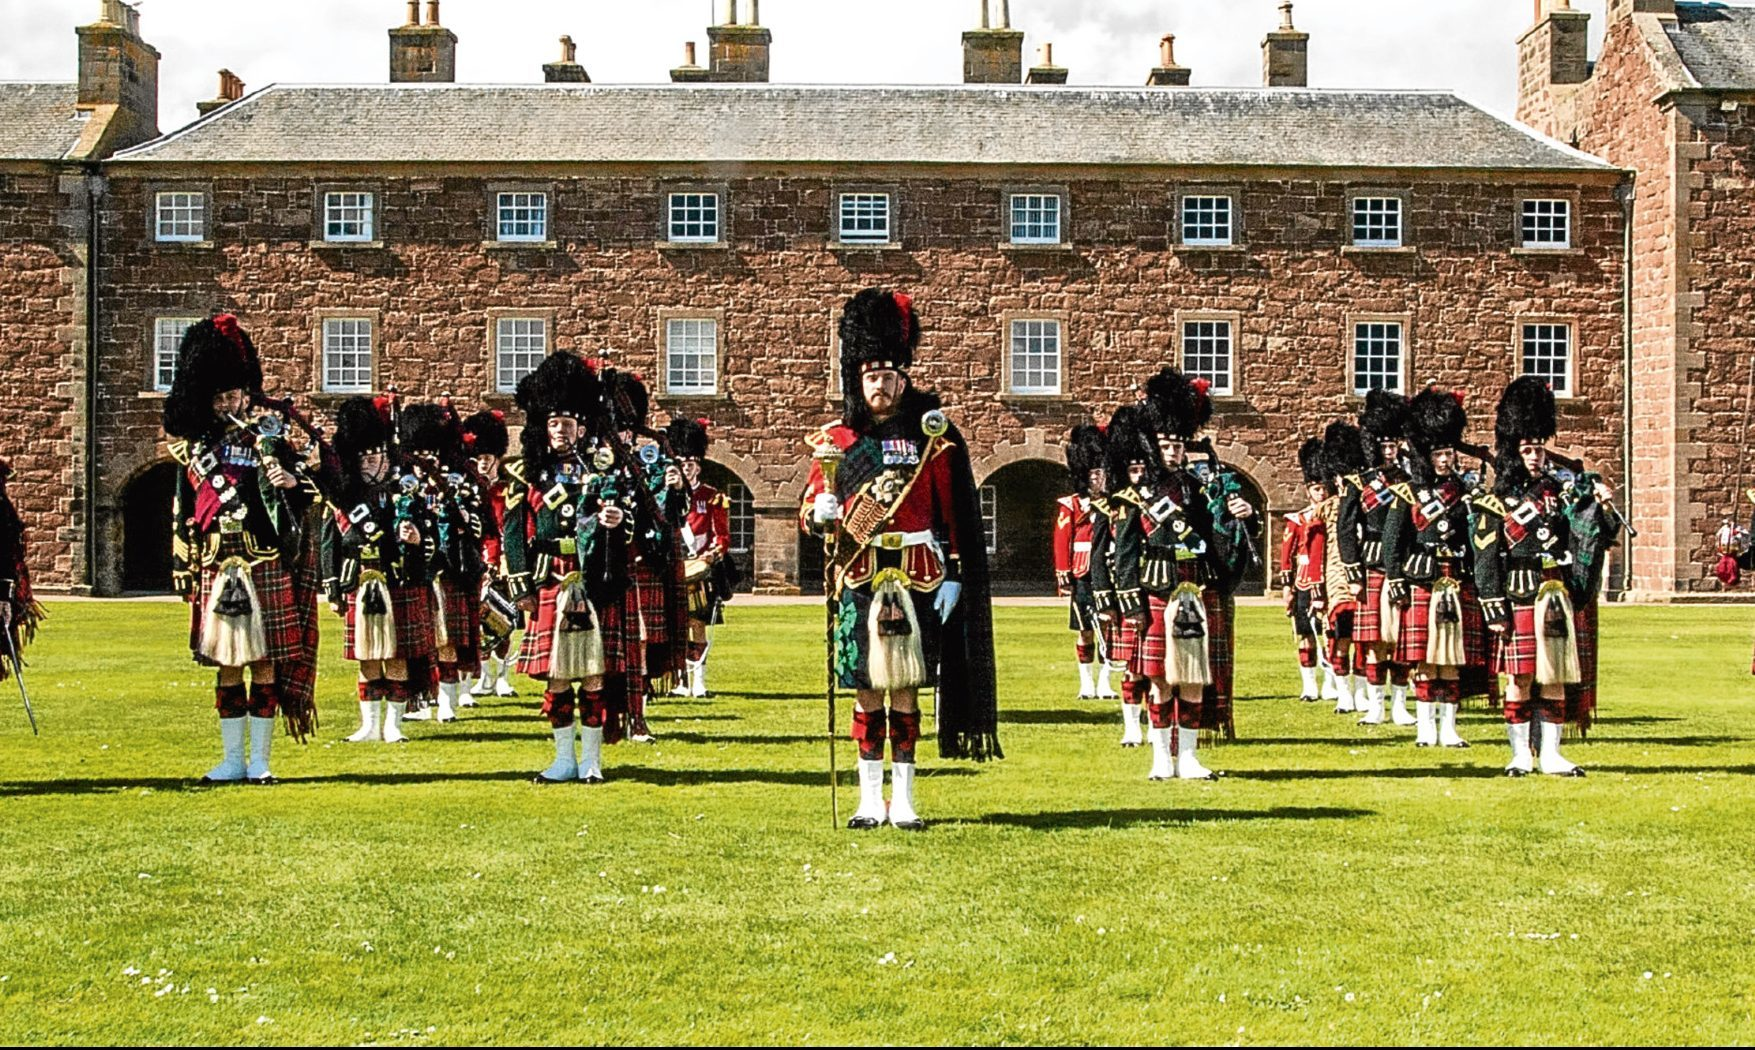 Soldiers from The Black Watch (3rd Battalion, The Royal Regiment of Scotland) at Fort George.